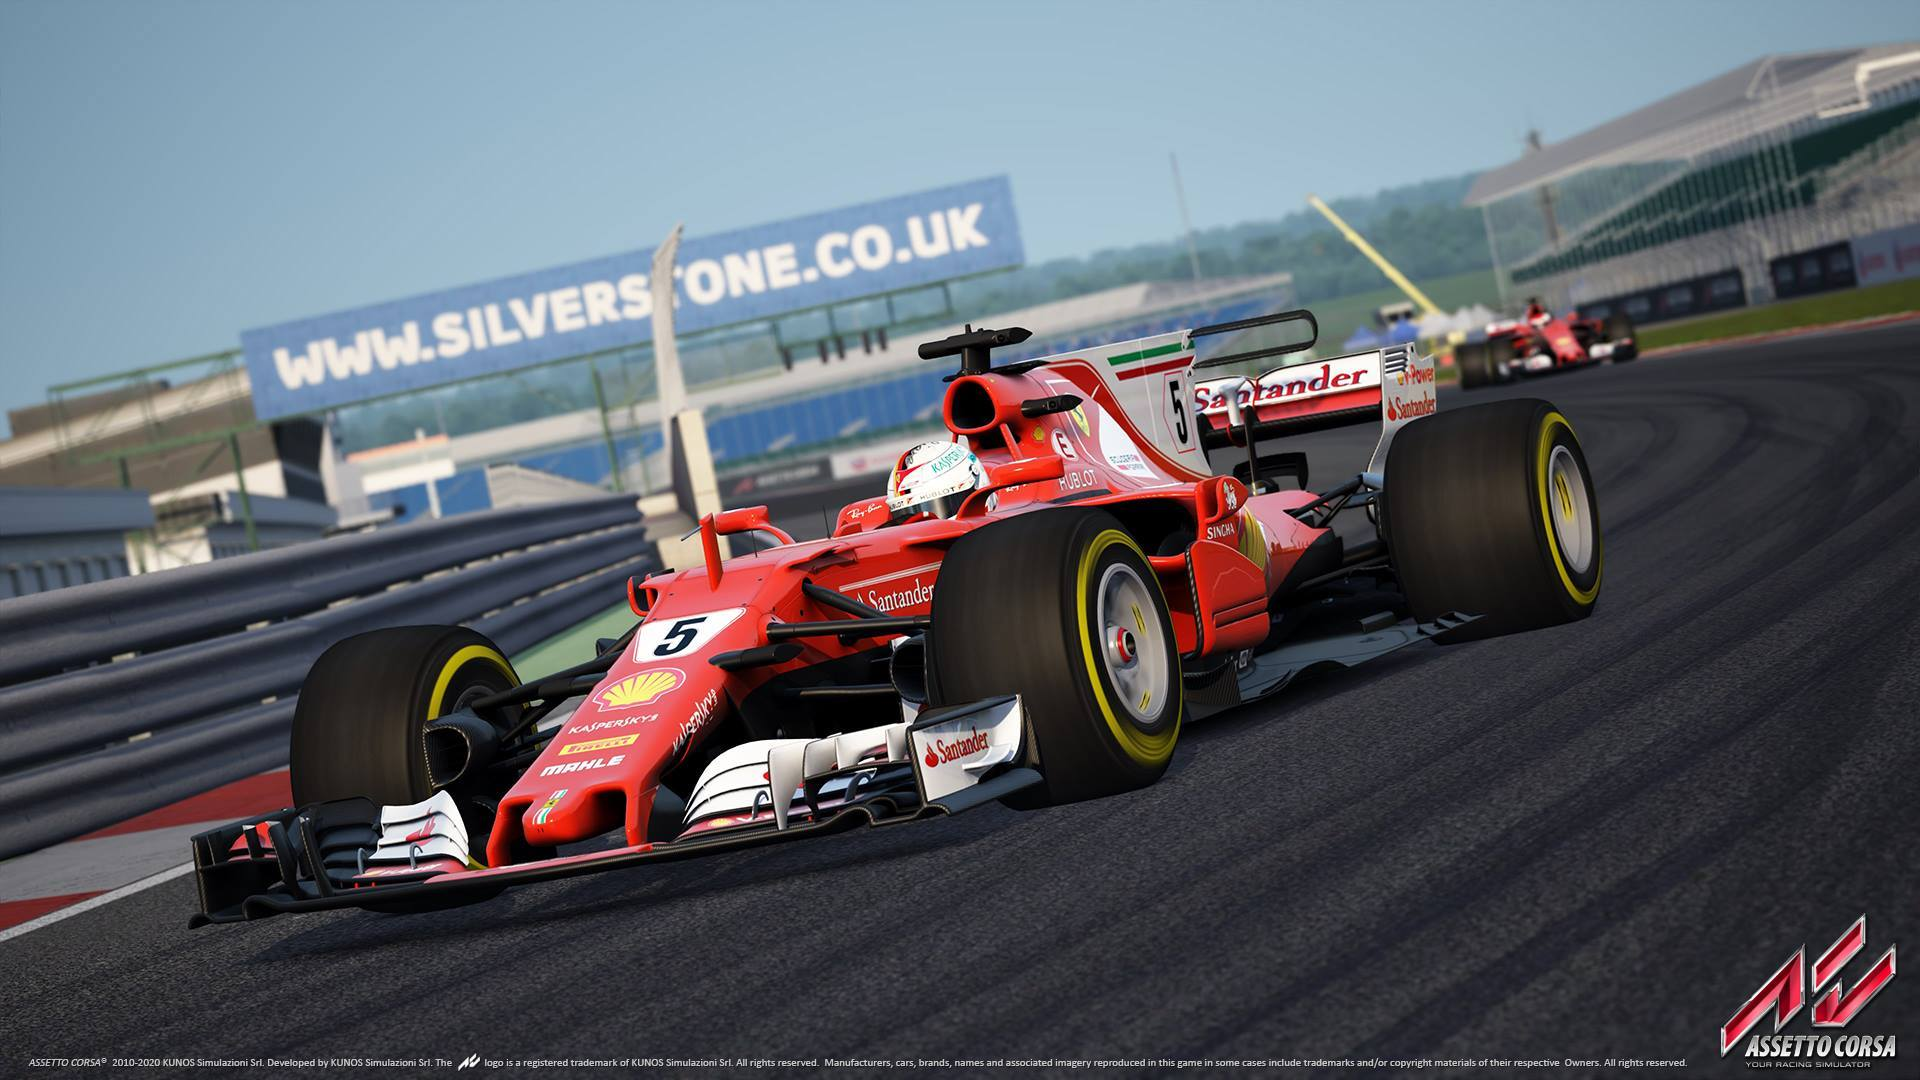 assetto corsa new xbox one update fixes ferrari dlc. Black Bedroom Furniture Sets. Home Design Ideas